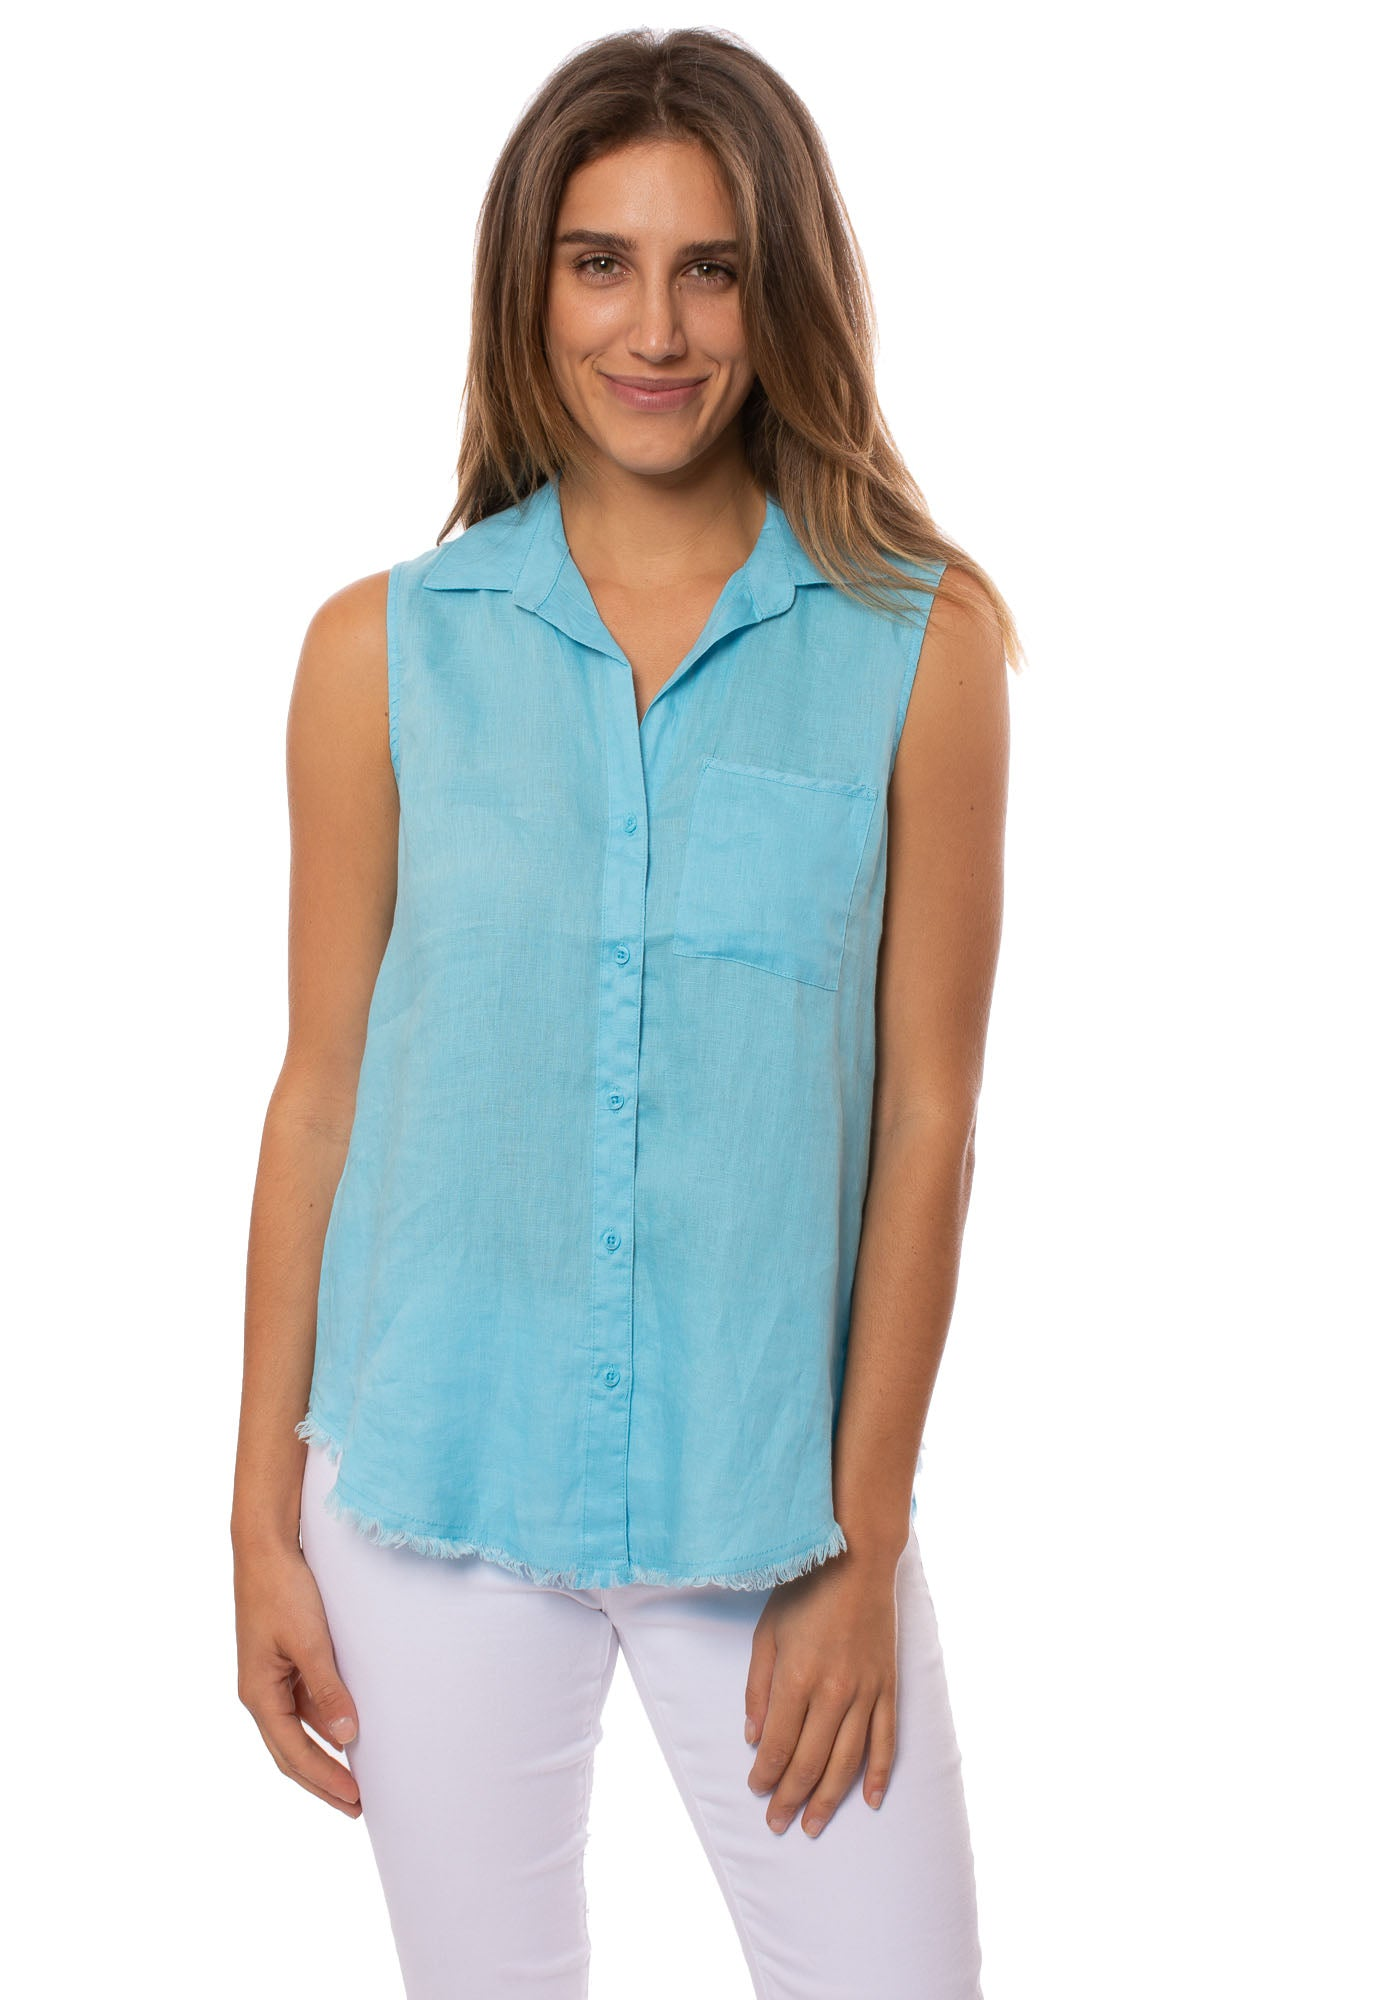 Velvet Heart - Raw Edge Button Up Ambrosia Tank (2JQ-22250F, Turquoise)